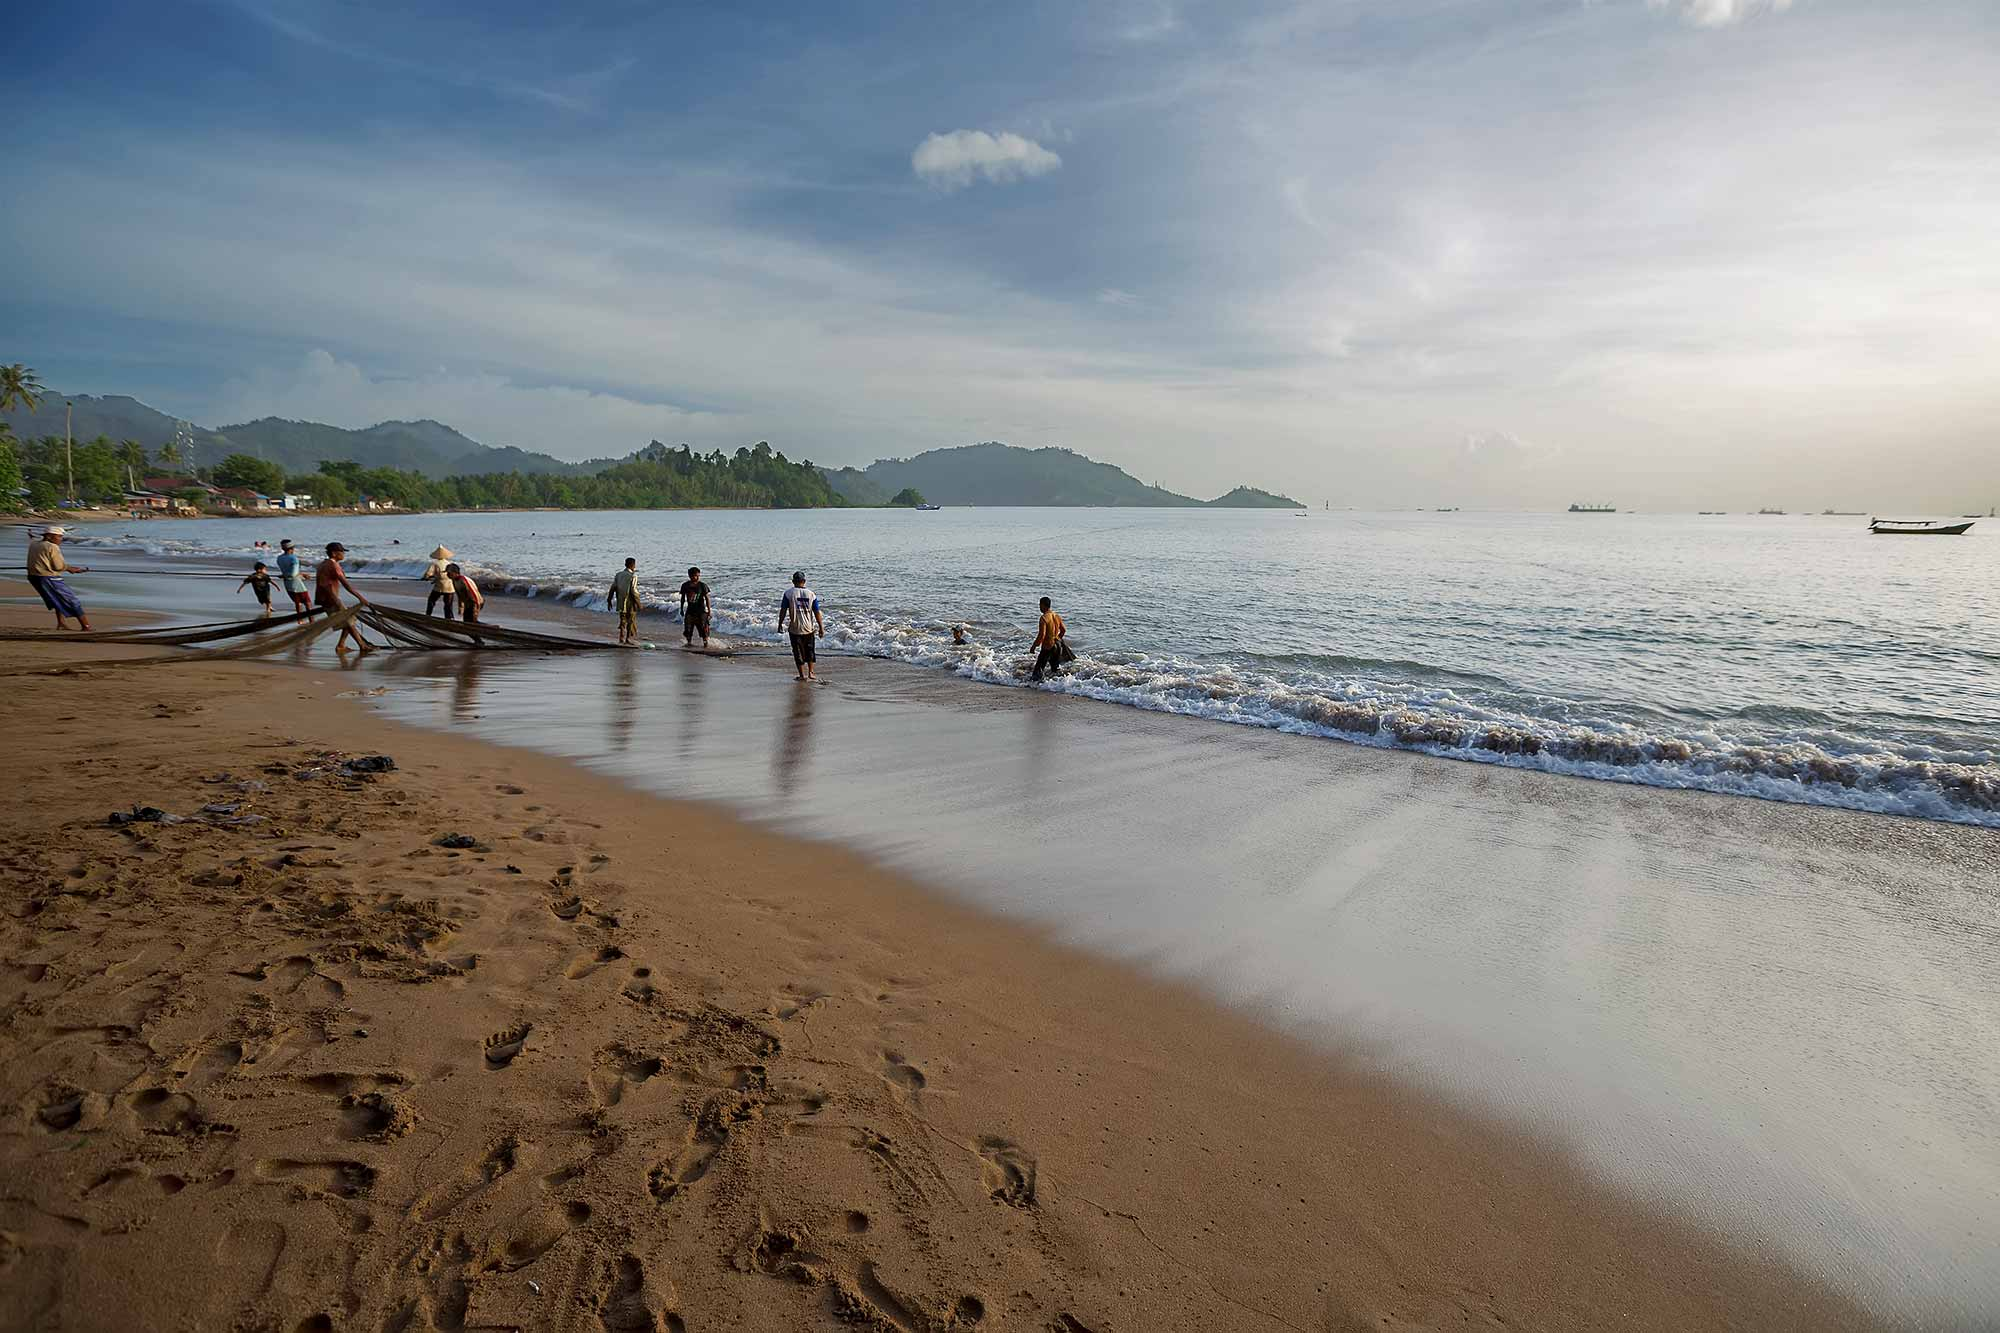 Fishermen pulling in the catch on Bungus beach in West Sumatra, Indonesia. © Ulli Maier & Nisa Maier